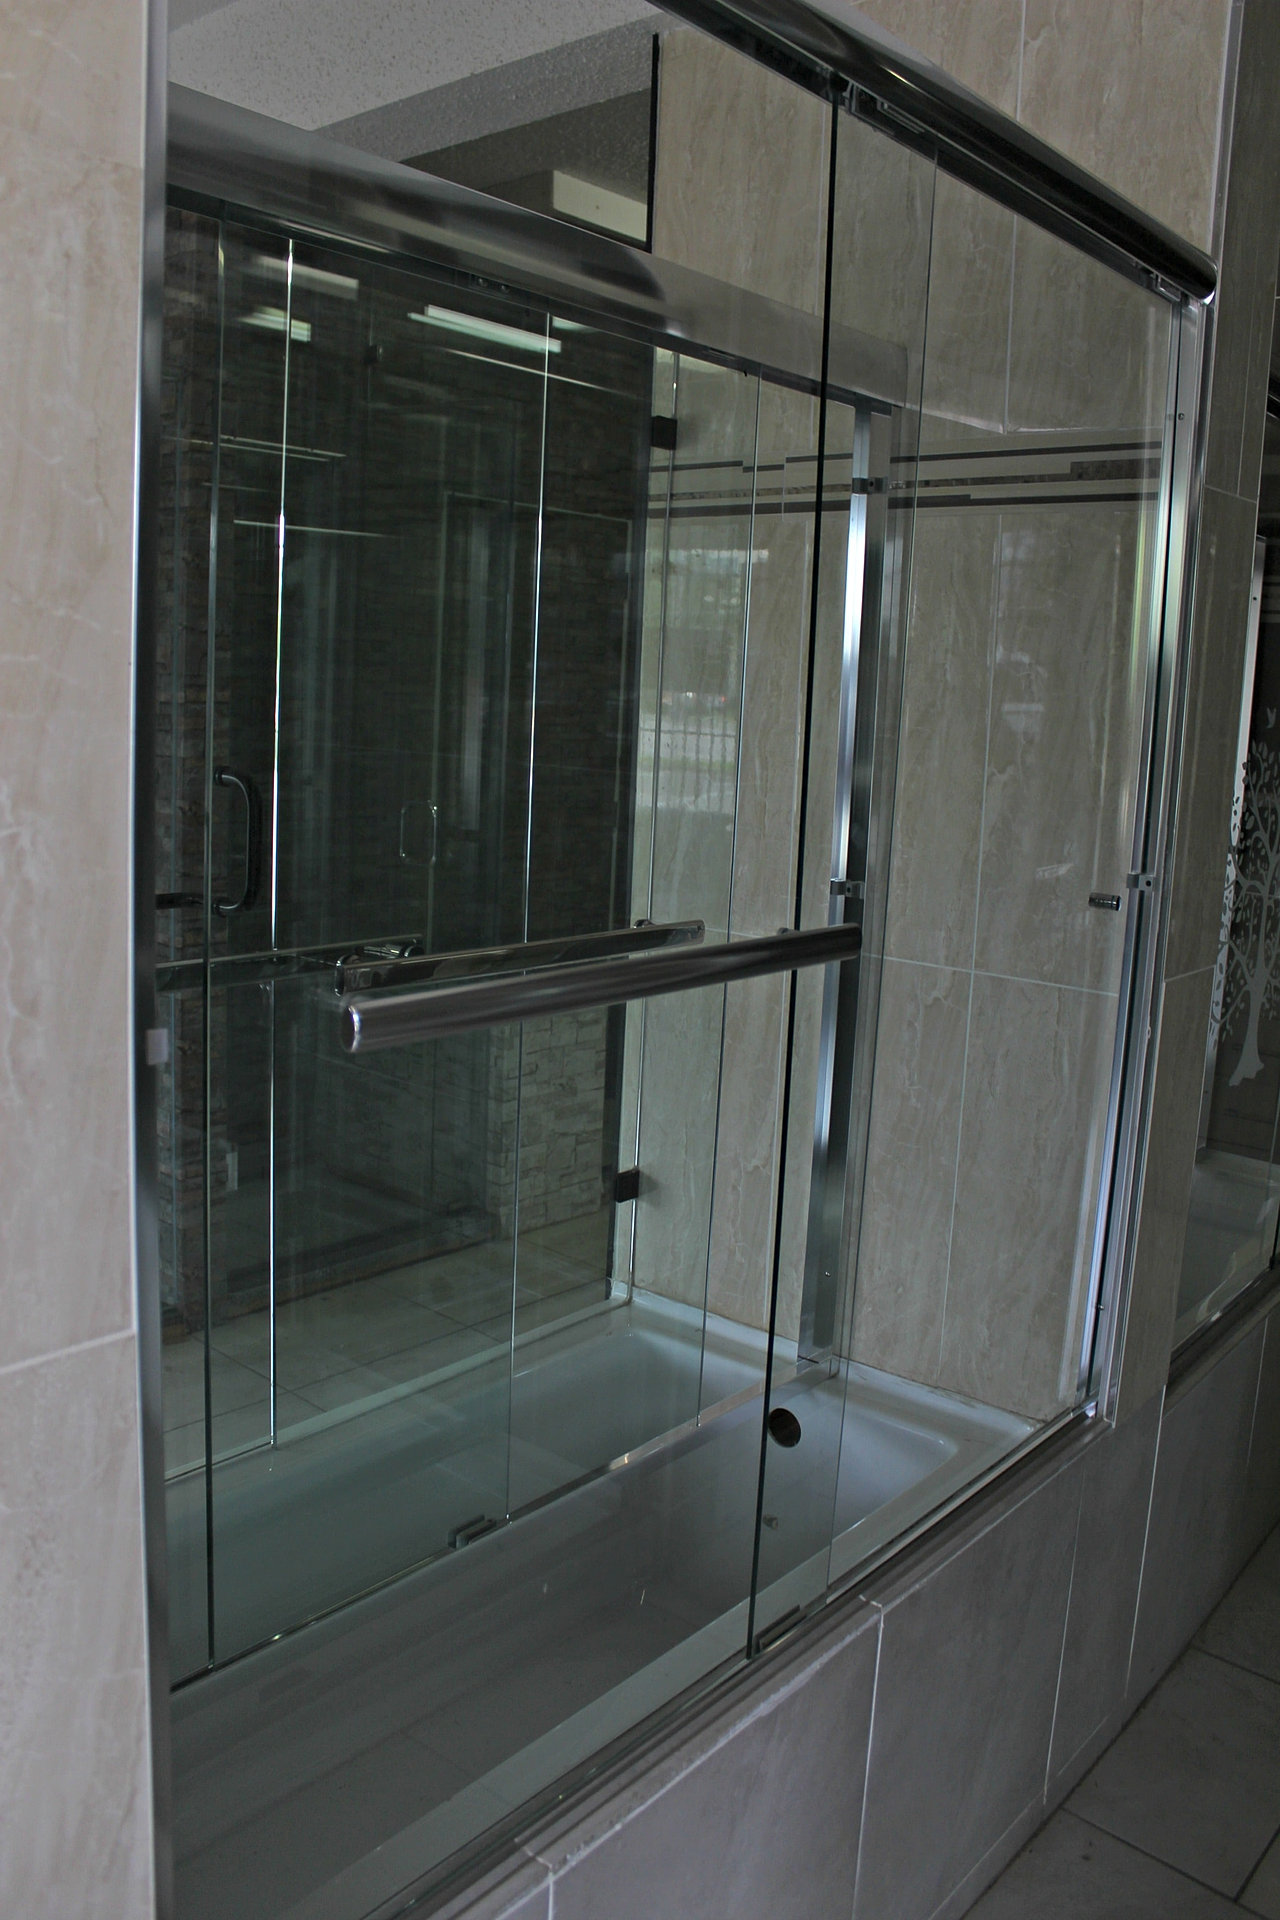 options full size for bathtub installation enchanting glass photos shower bathtubs mesmerizing doors door tub panel sliding modern frameless enclosure reviews cost